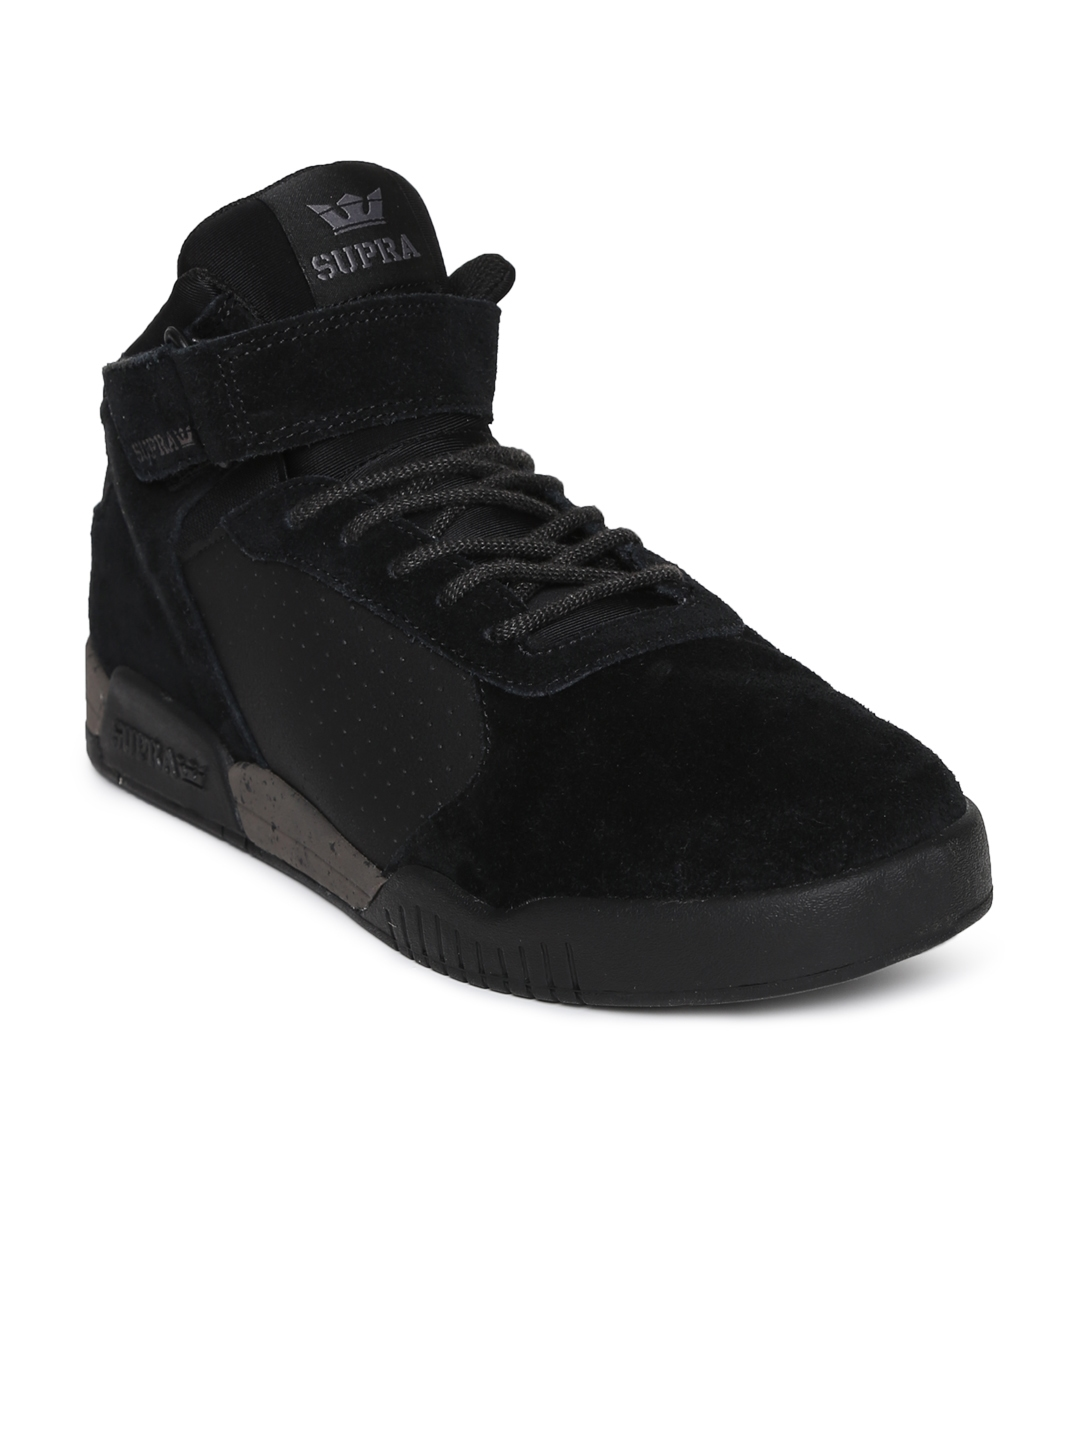 8d8670335efd Buy Supra Men Black ELLINGTON STRAP Suede Sneakers - Casual Shoes ...